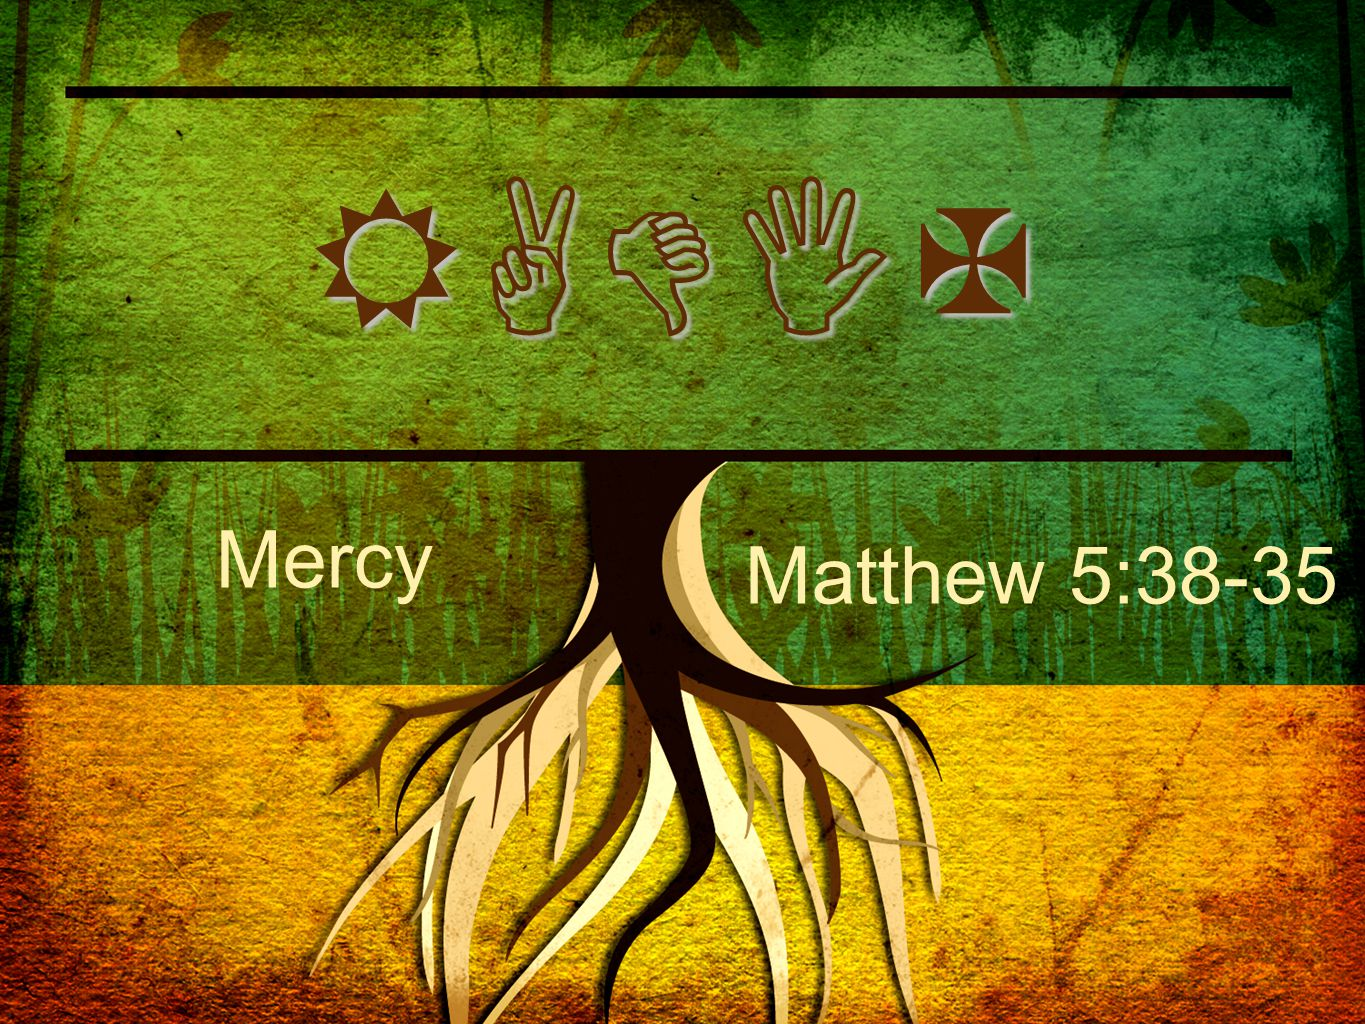 RADIX Mercy Matthew 5:38-35